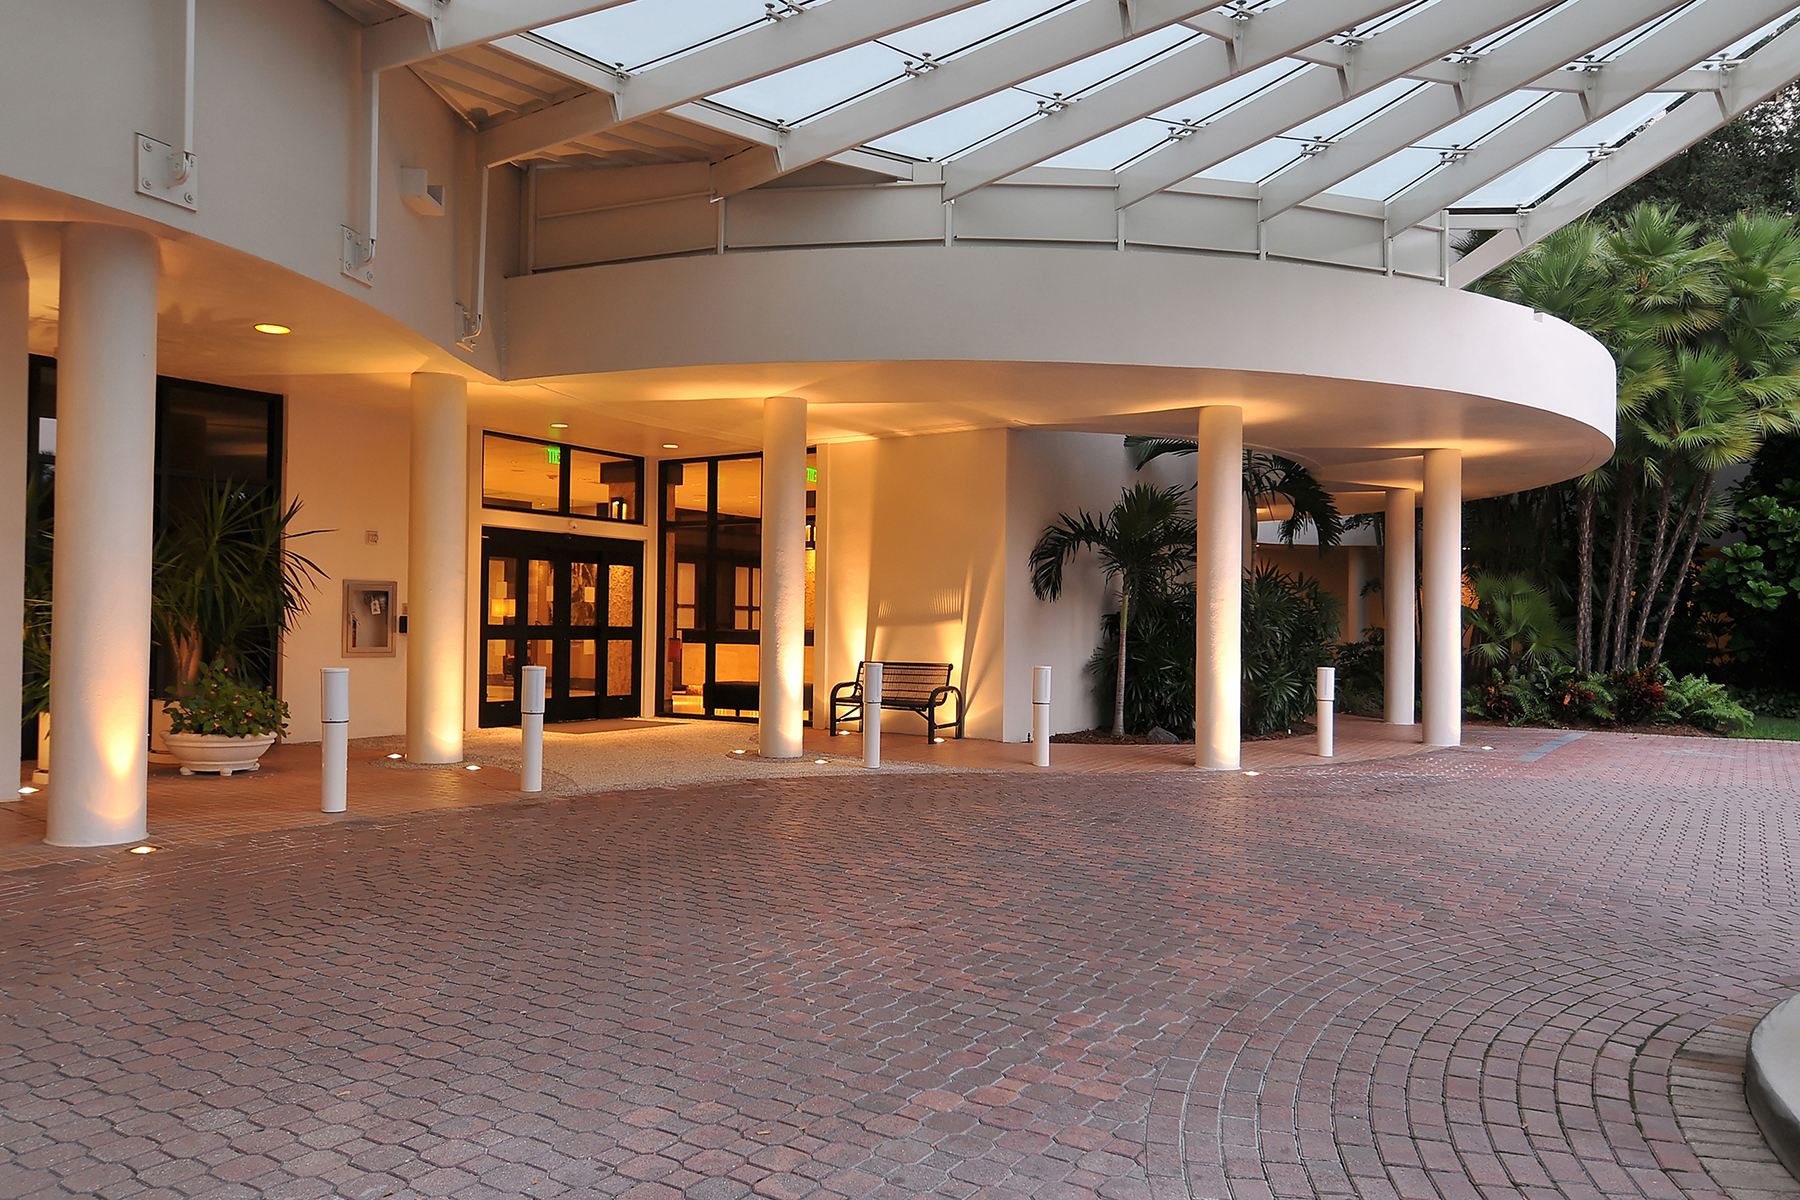 Condominium for Sale at BAY PLAZA 1255 N Gulfstream Ave 1002 Sarasota, Florida, 34236 United States